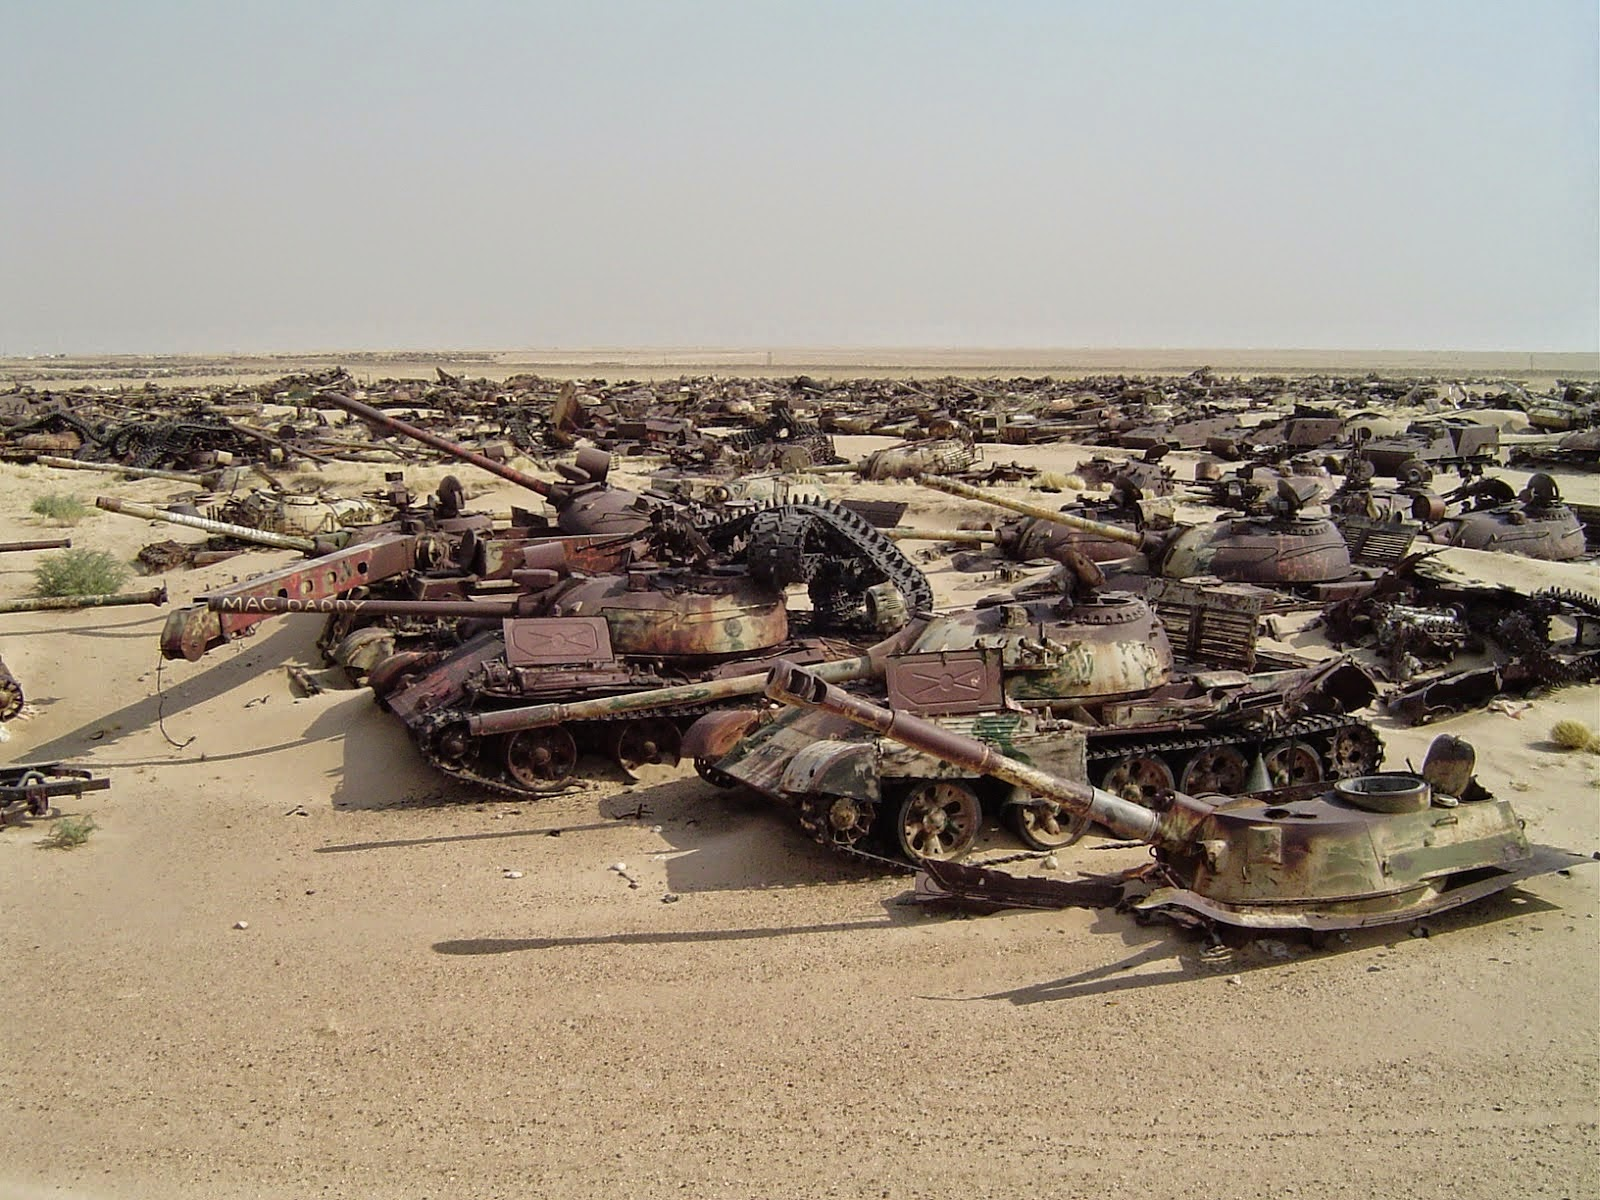 Tank graveyard in Kuwait, tank best picture, historical tank picture